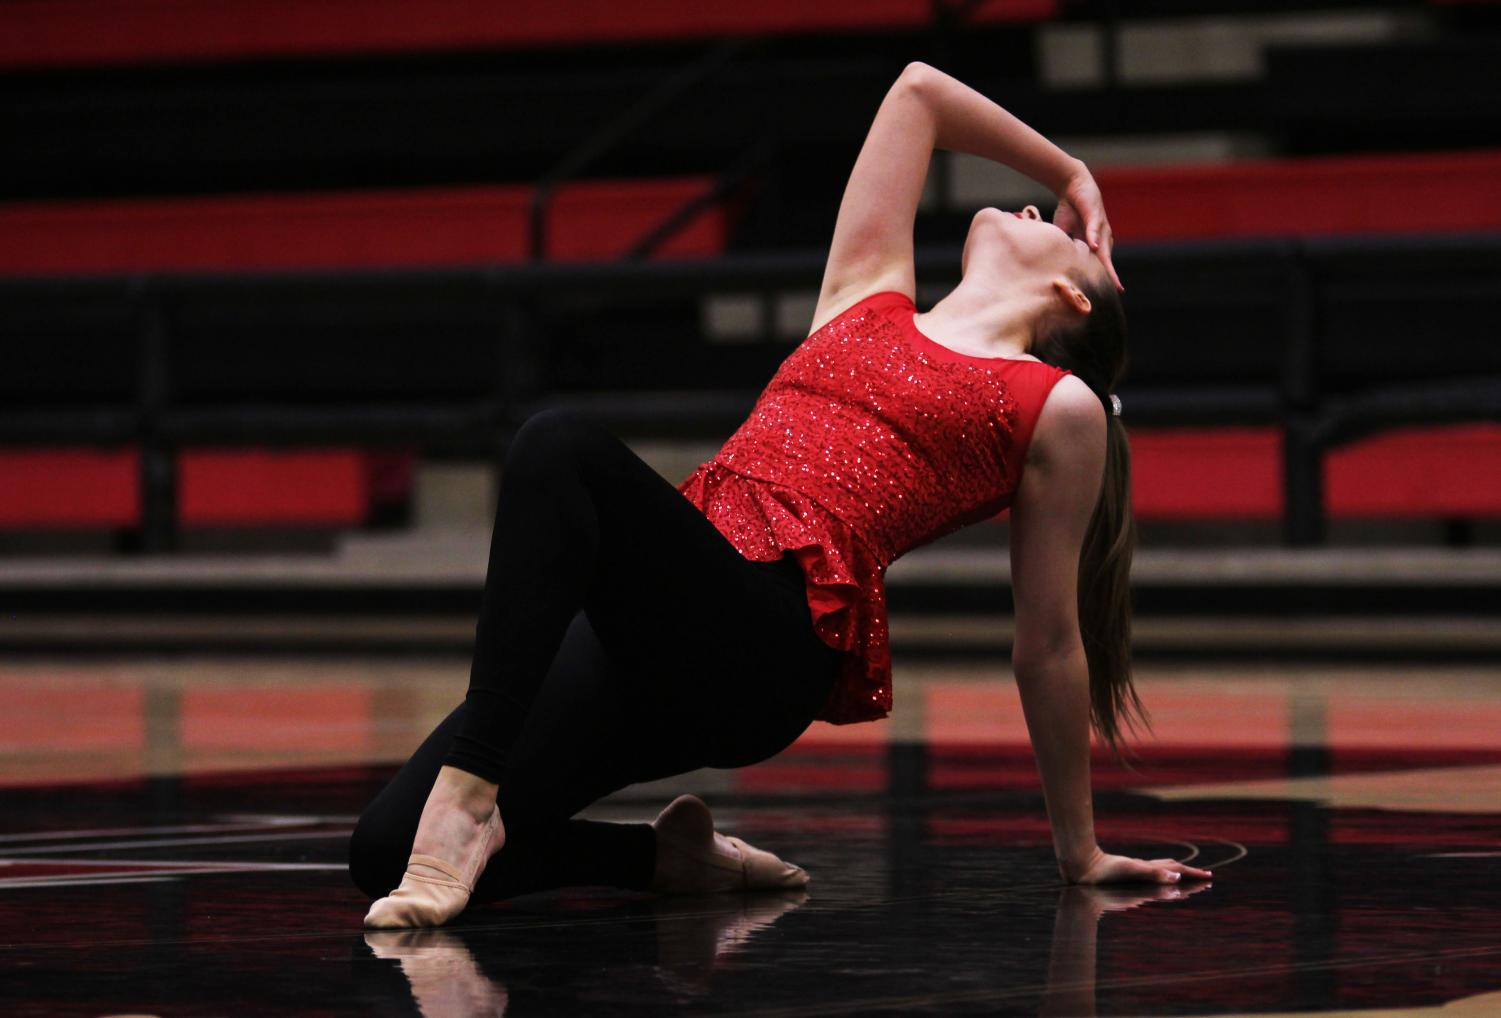 Majestics%27+Major+Kylee+Reinke+poses+on+the+floor+during+the+Officer%27s+performance.+